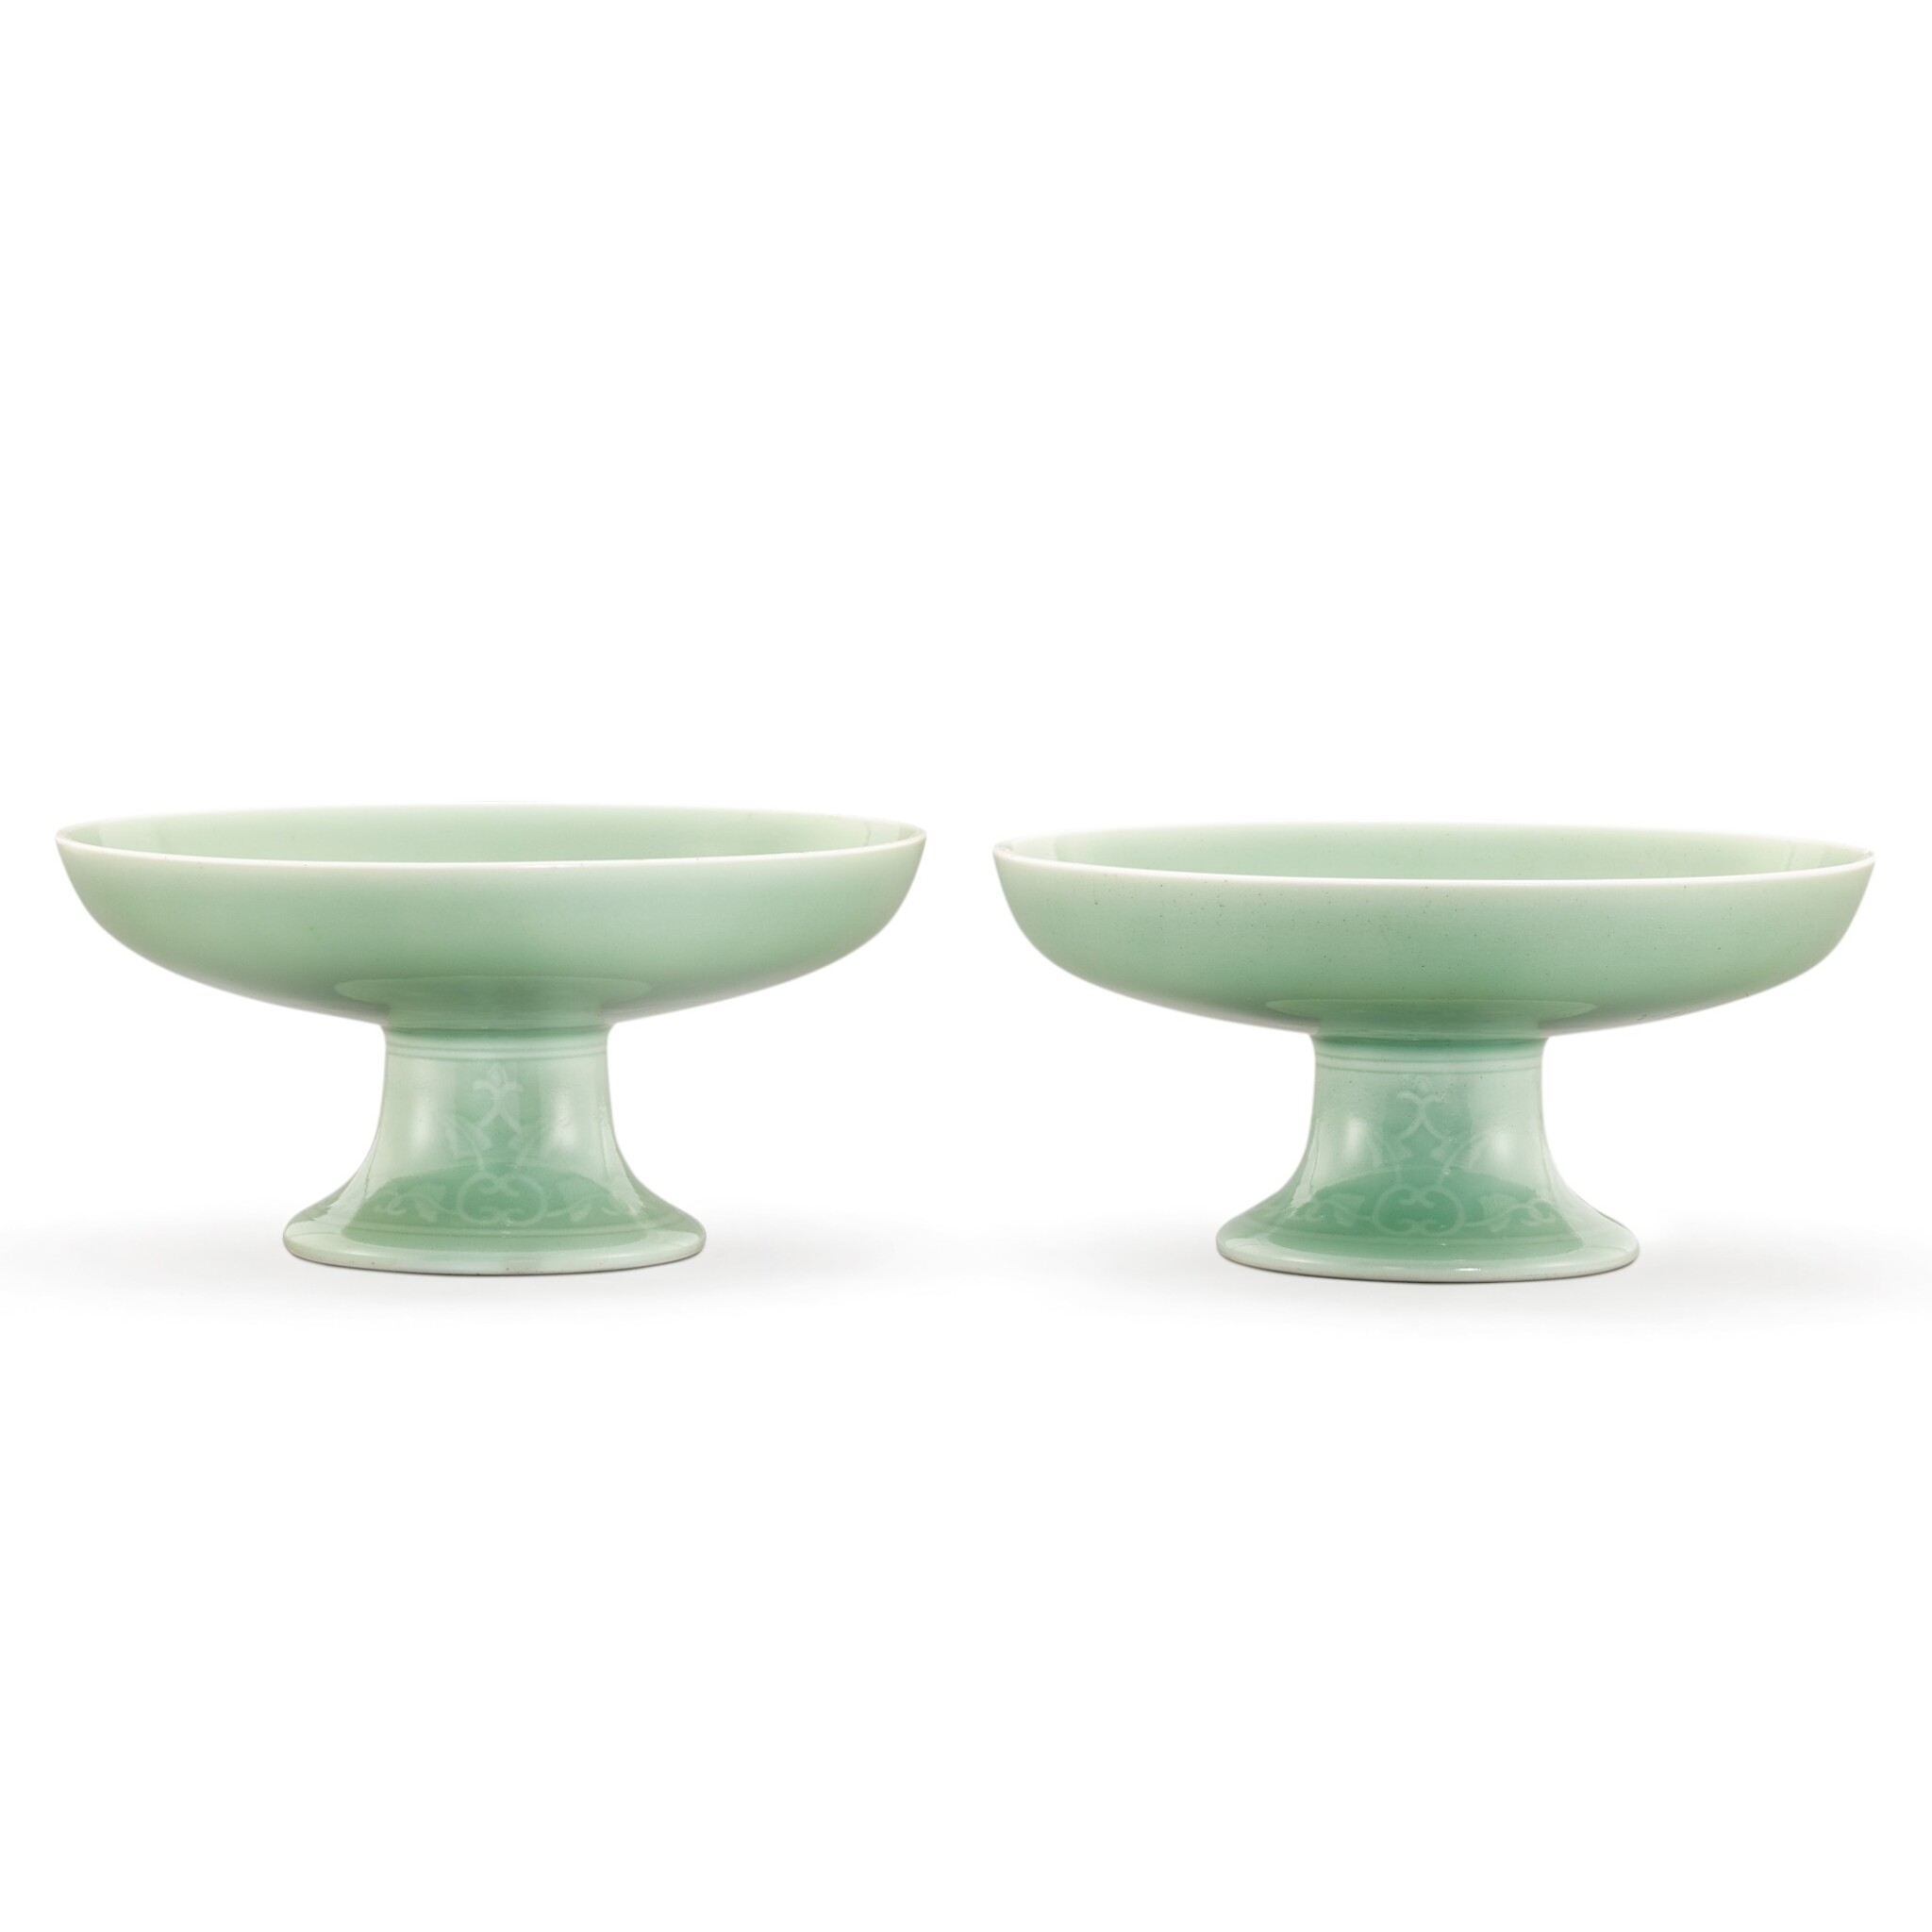 View 1 of Lot 111. A PAIR OF CELADON-GLAZED TAZZA DISHES SEAL MARKS AND PERIOD OF QIANLONG | 清乾隆 粉青釉花卉紋供盤一對 《大清乾隆年製》款.